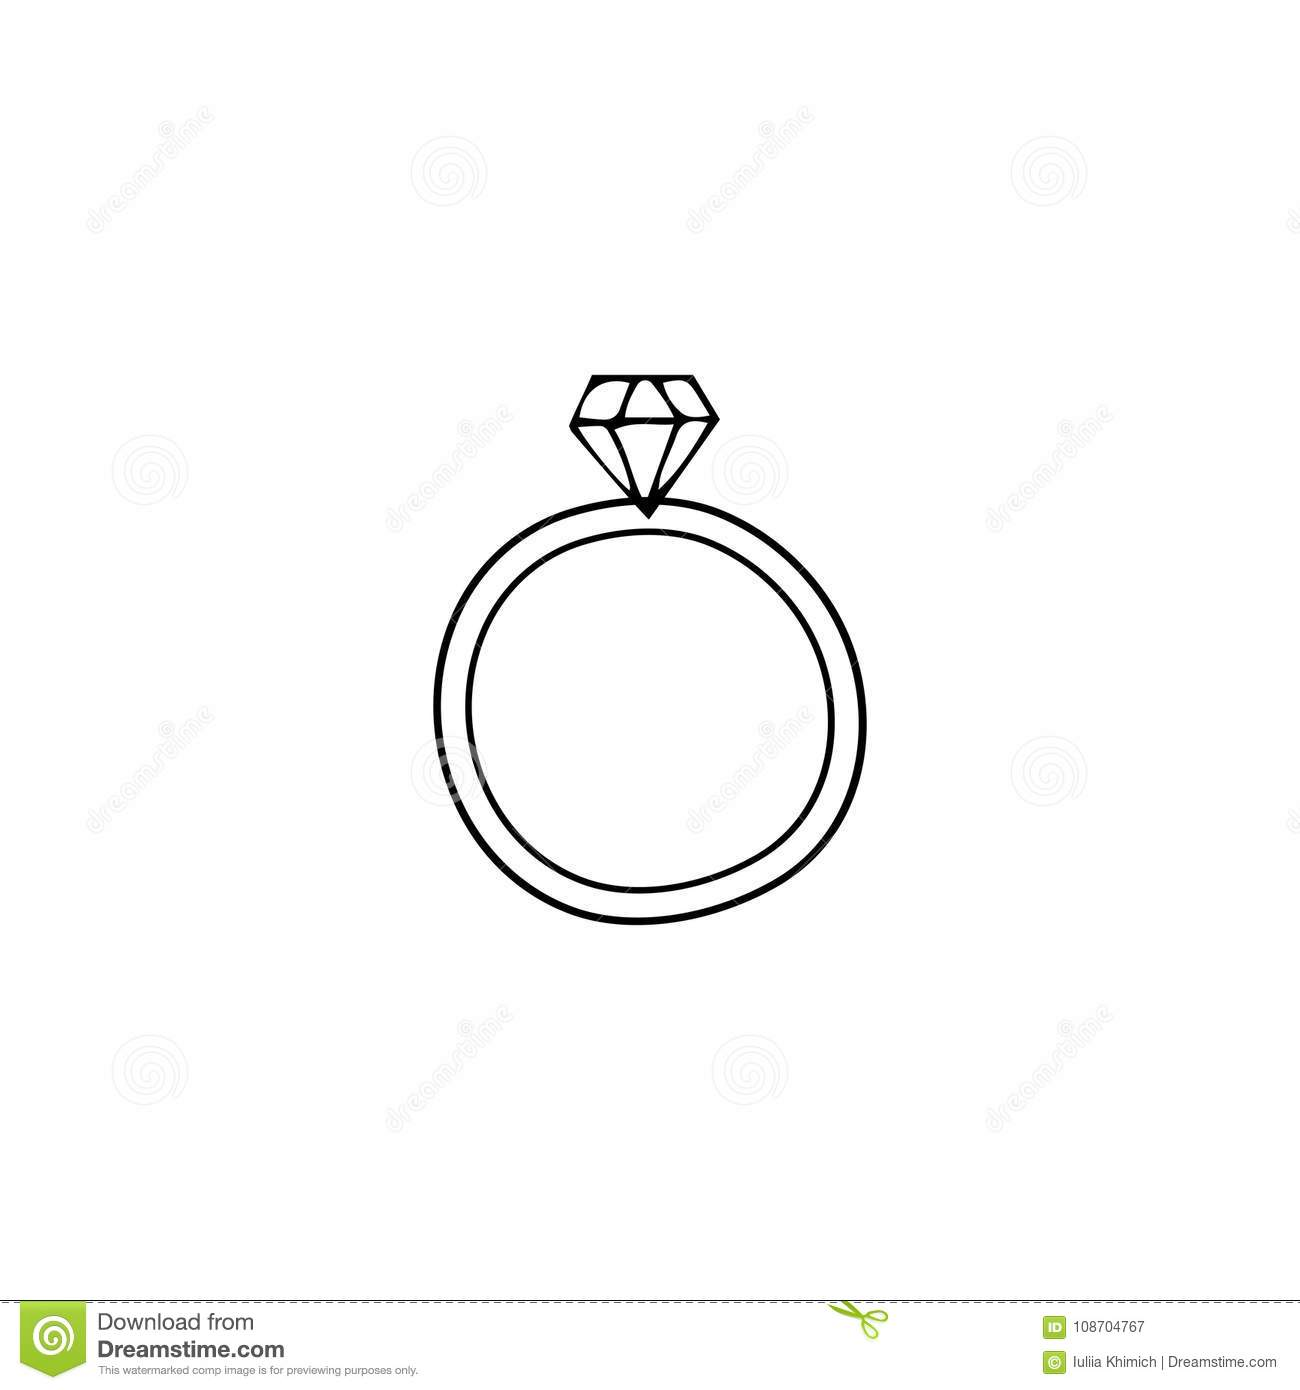 wedding ring logo element stock vector illustration of lady 108704767 https www dreamstime com wedding ring logo element vector hand drawn object wedding ring feminine logo element romantic clipart wedding planner image108704767